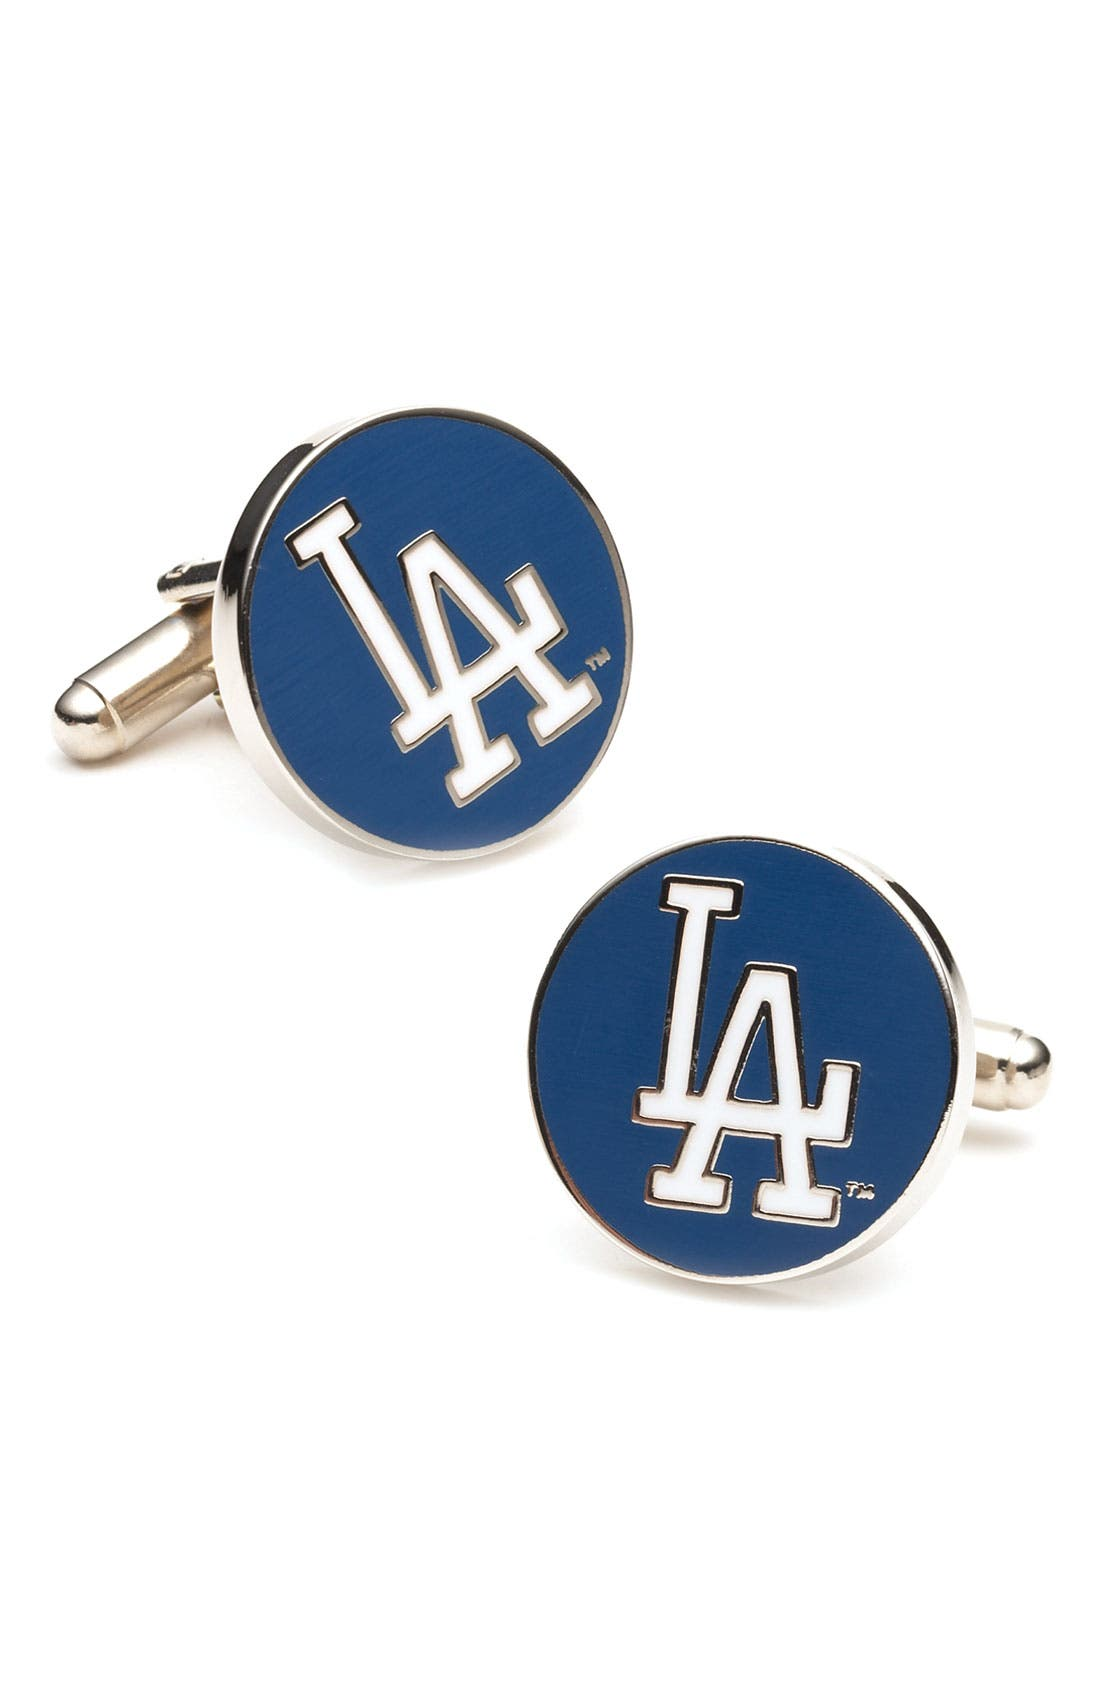 'Los Angeles Dodgers' Cuff Links,                         Main,                         color, Blue/ White